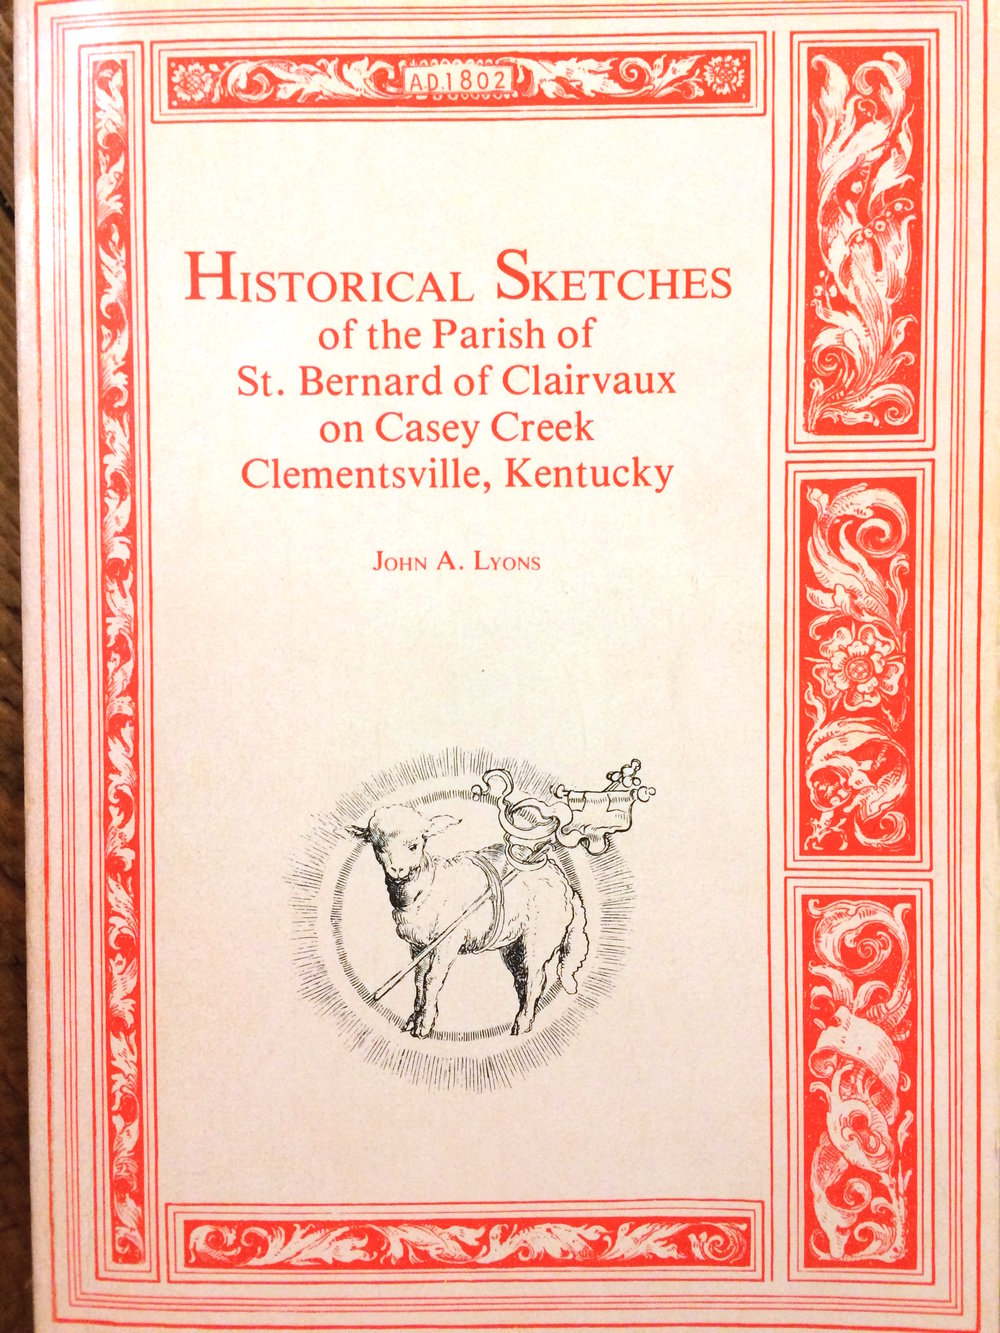 Historical Sketches of the Parish of St. Bernard of Clairvaux on Casey Creek Clementsville, Kentucky - John A. Lyons